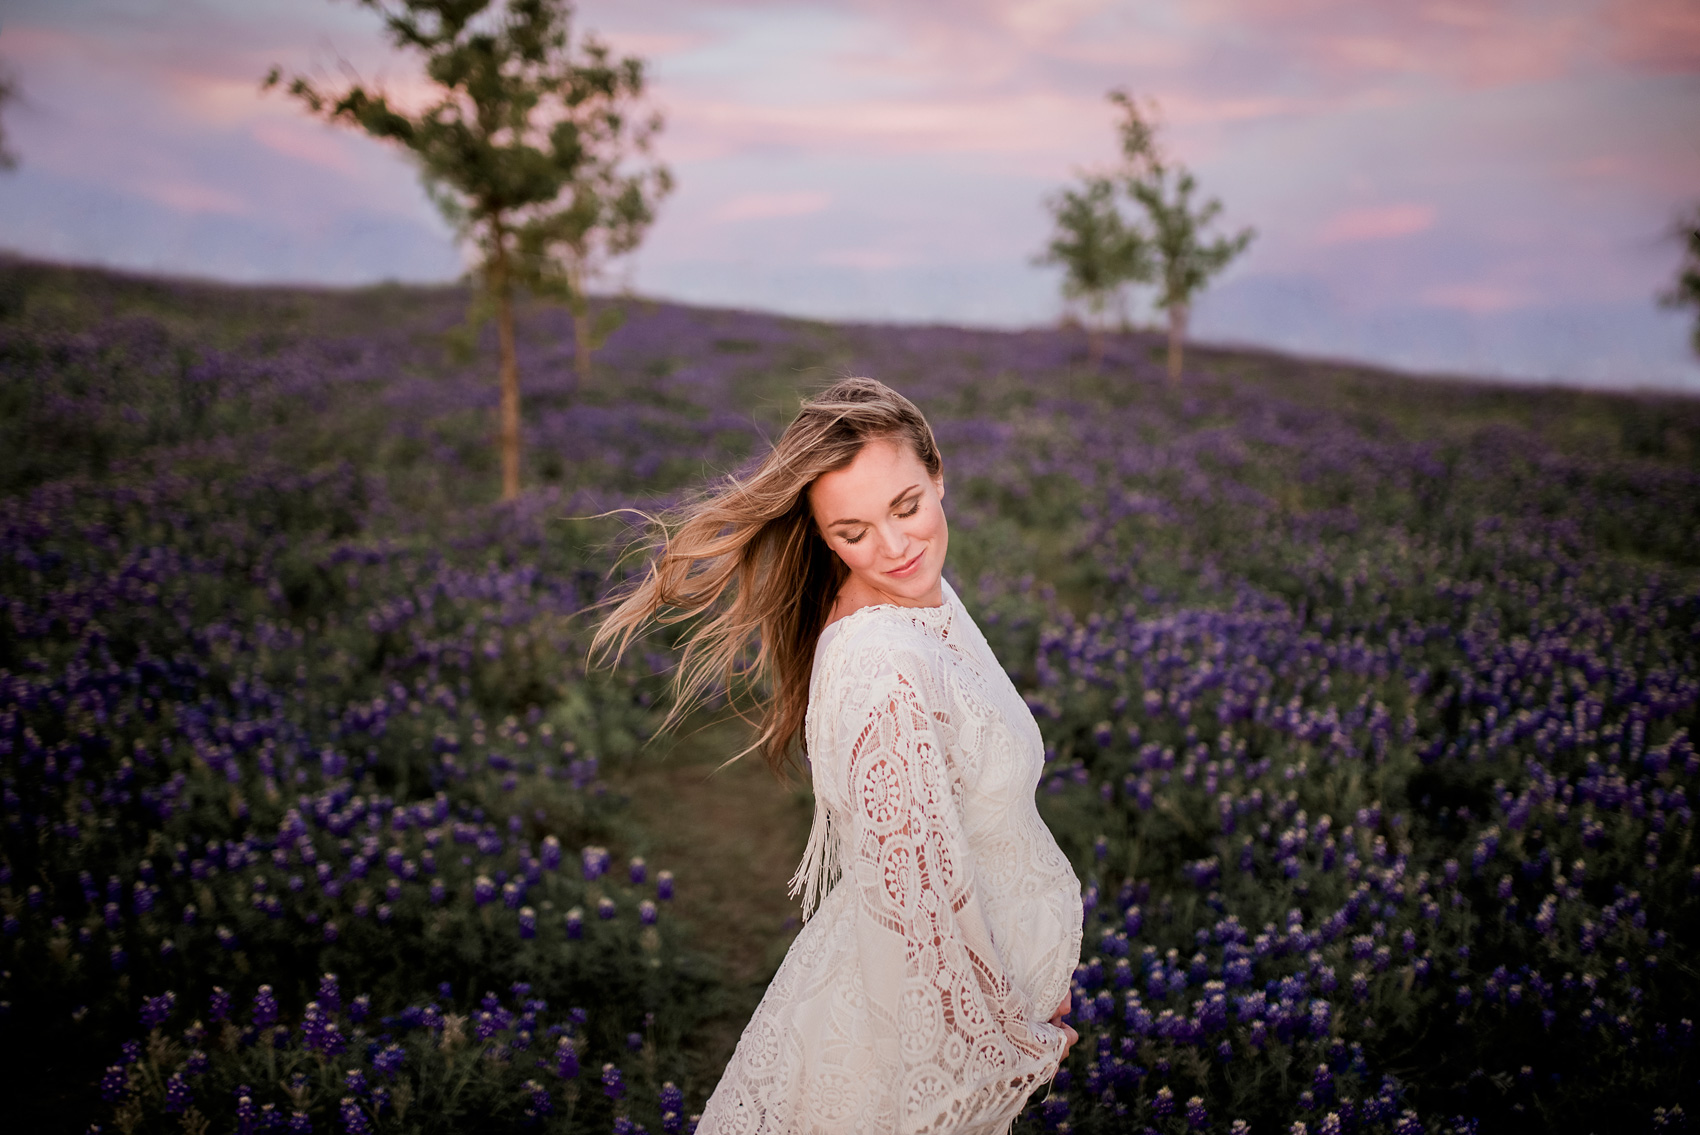 Pregnancy Photo Shoot Bluebonnets CLJ Photography Dallas Pregnancy Photo Shoot